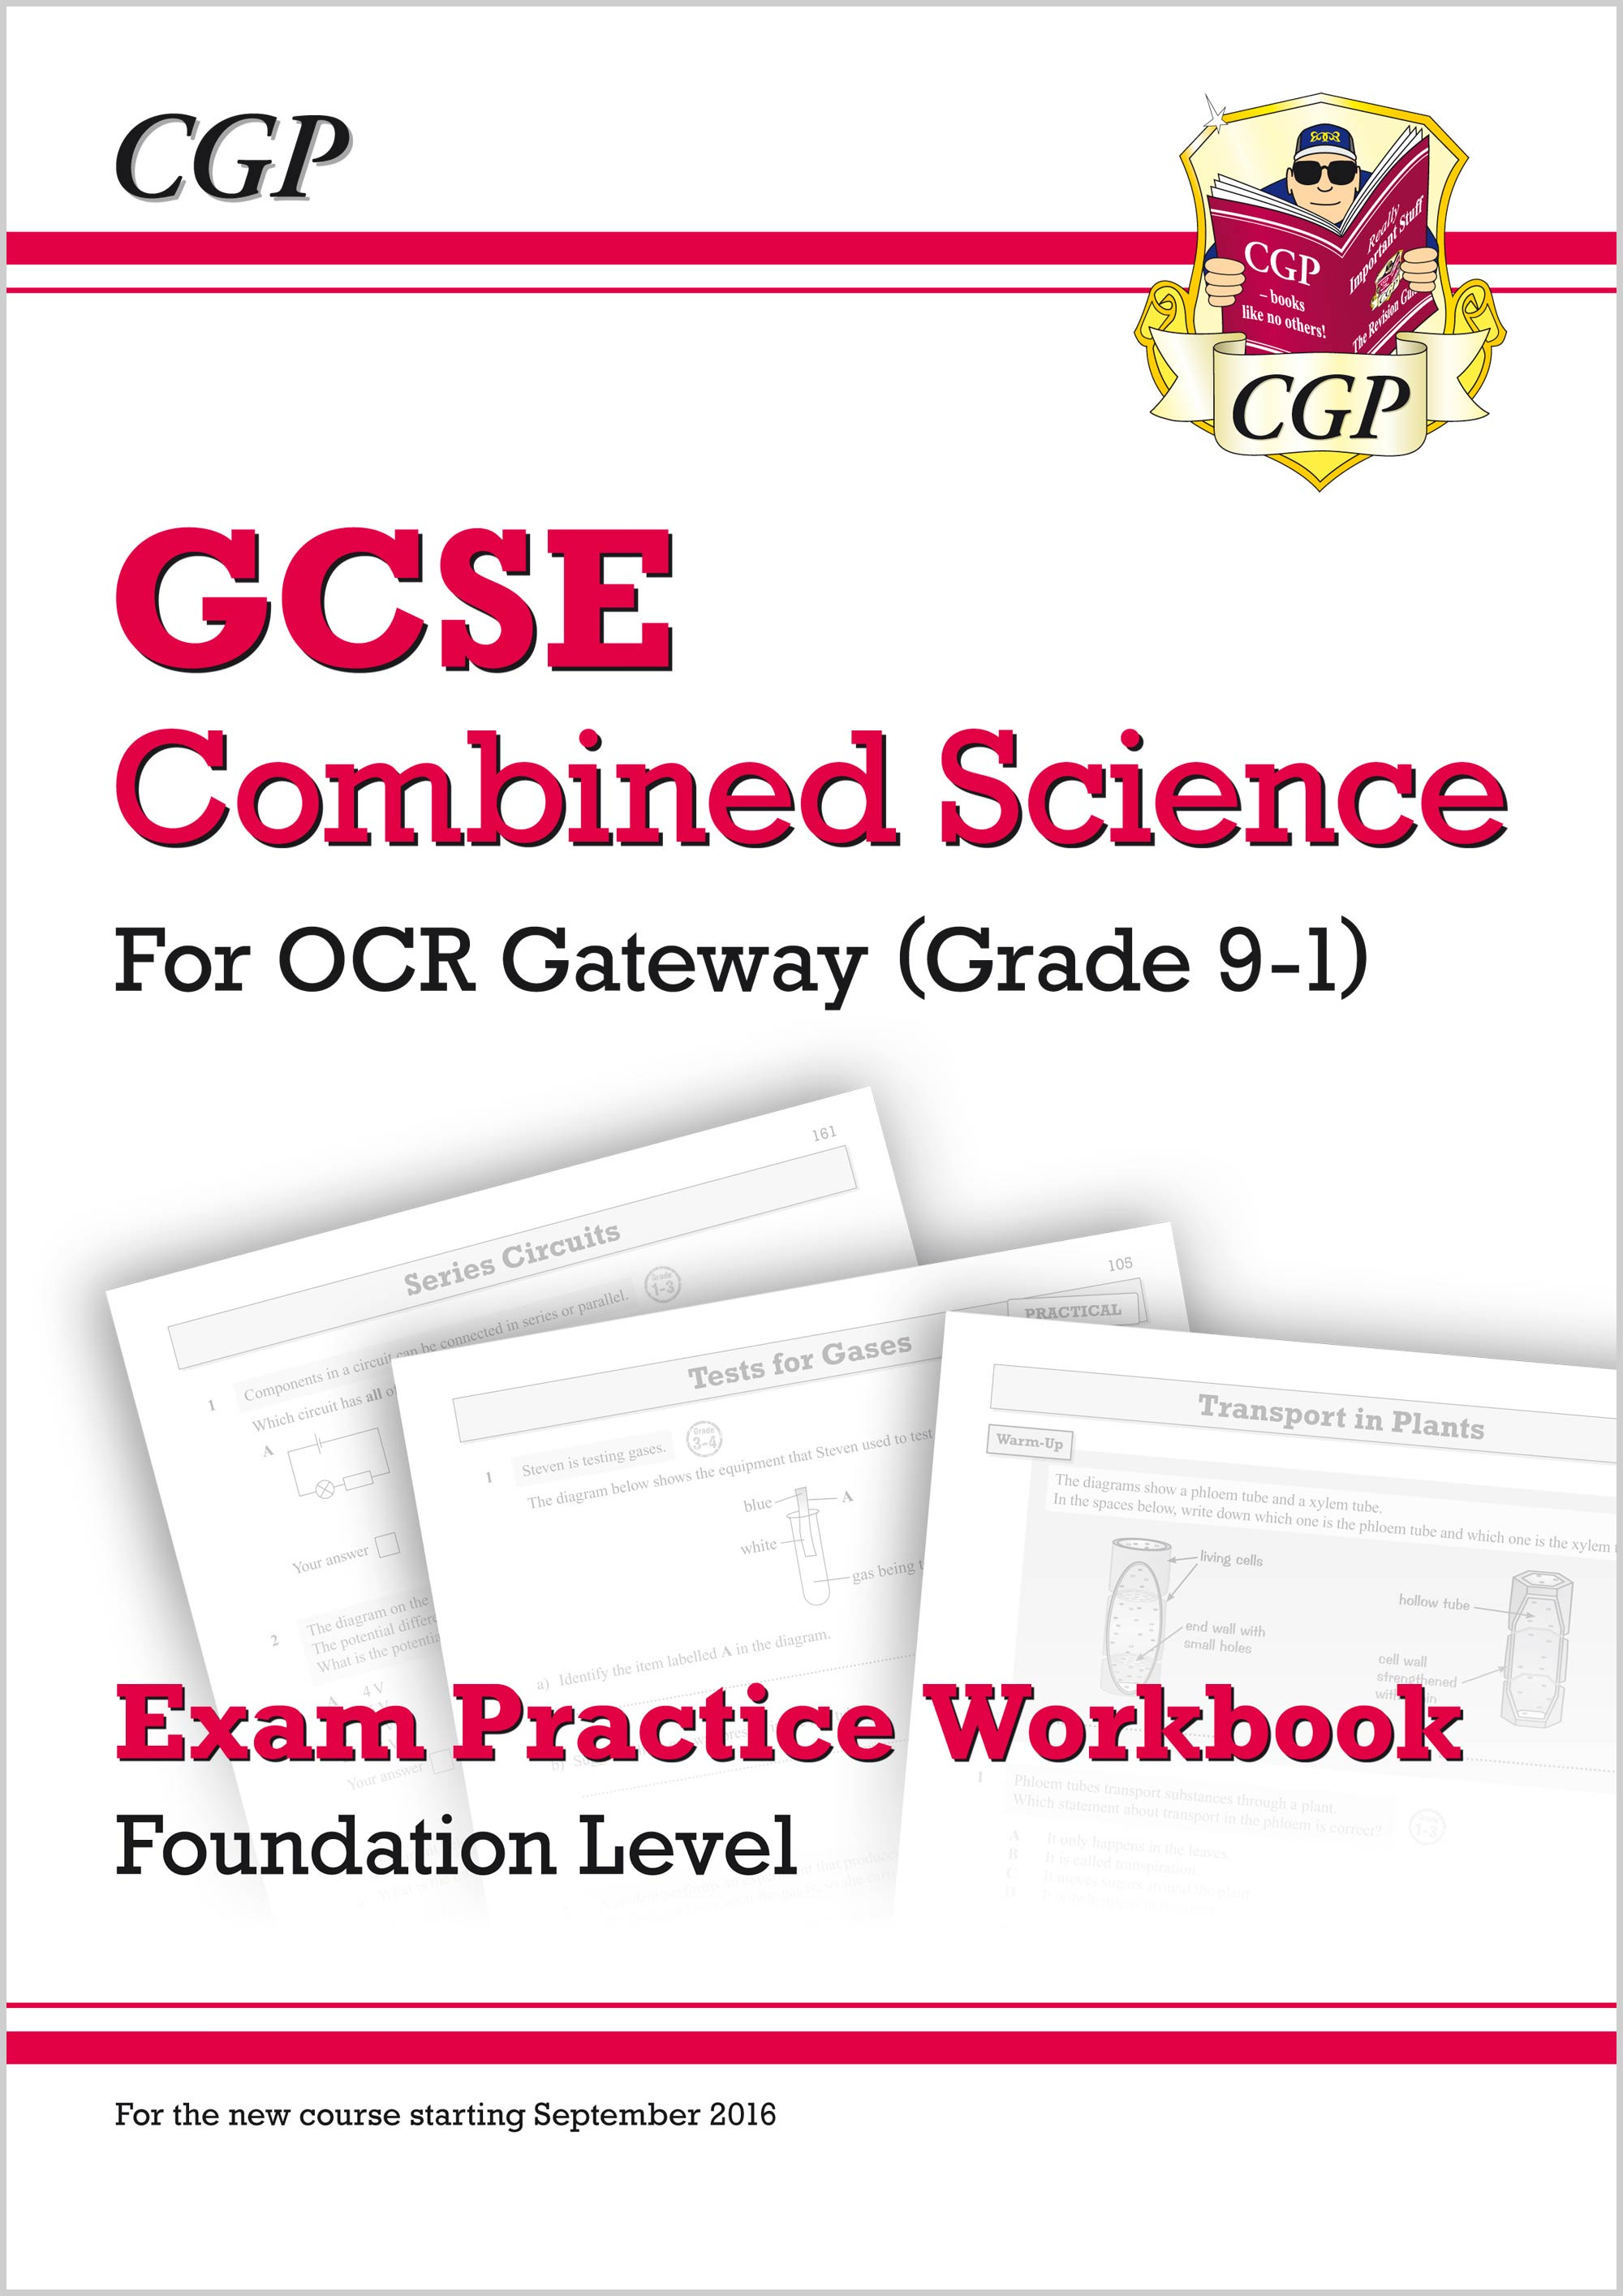 SRFQ41 - Grade 9-1 GCSE Combined Science: OCR Gateway Exam Practice Workbook - Foundation